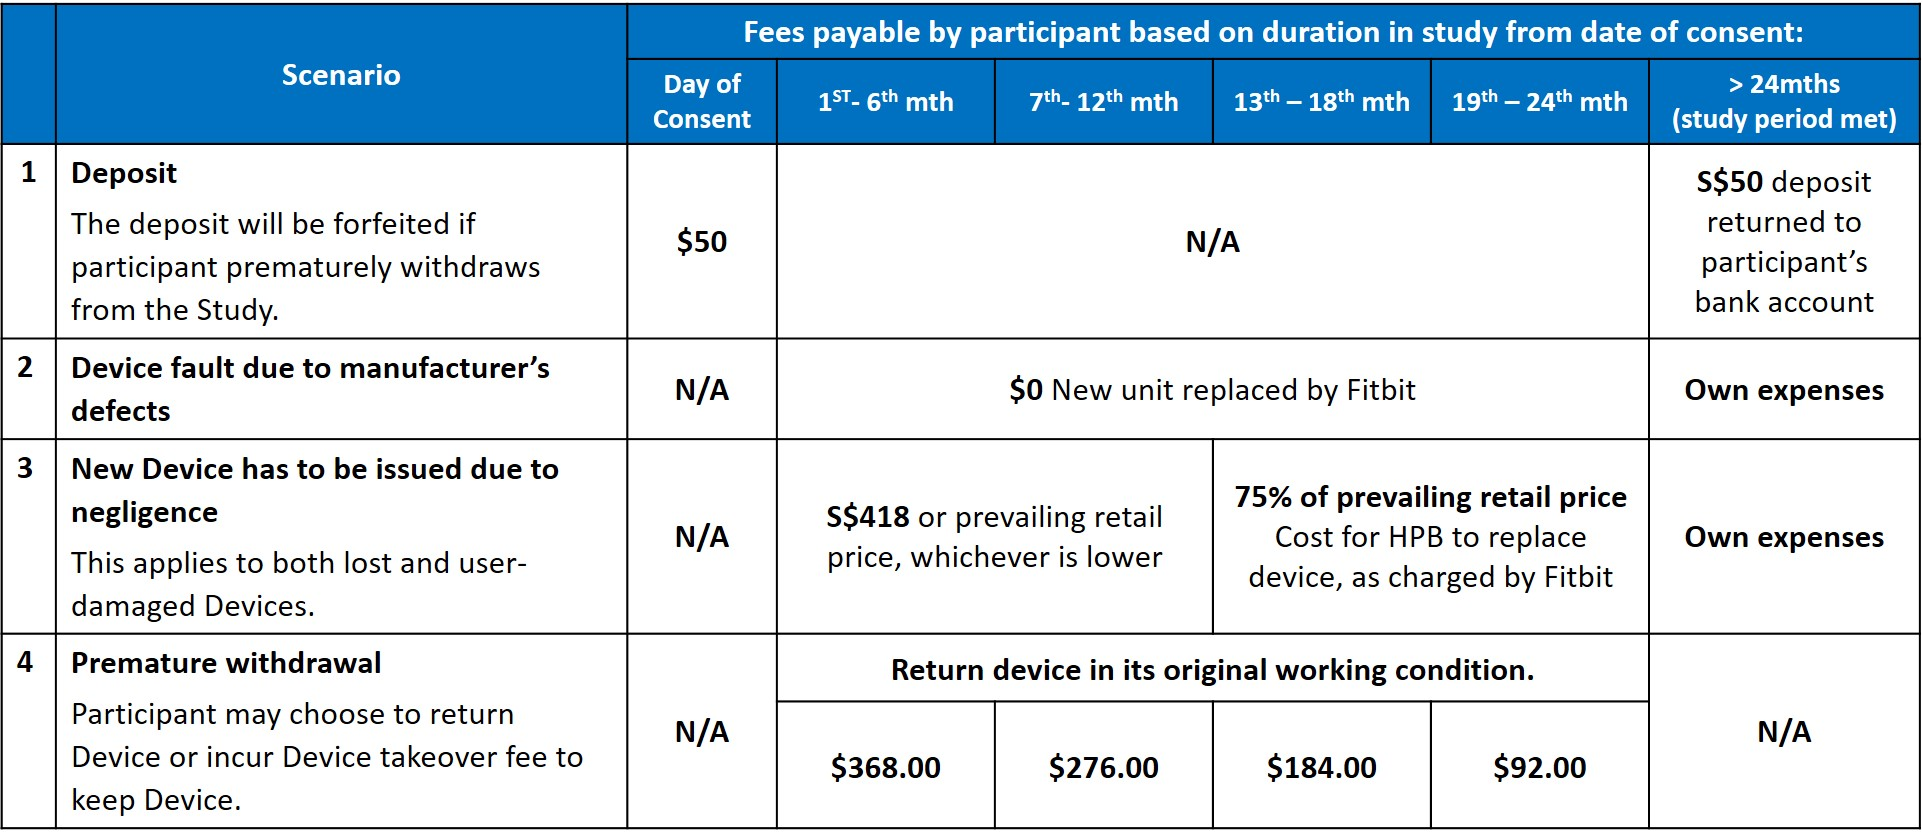 Schedule of rates payable by the Participant during the course of Study